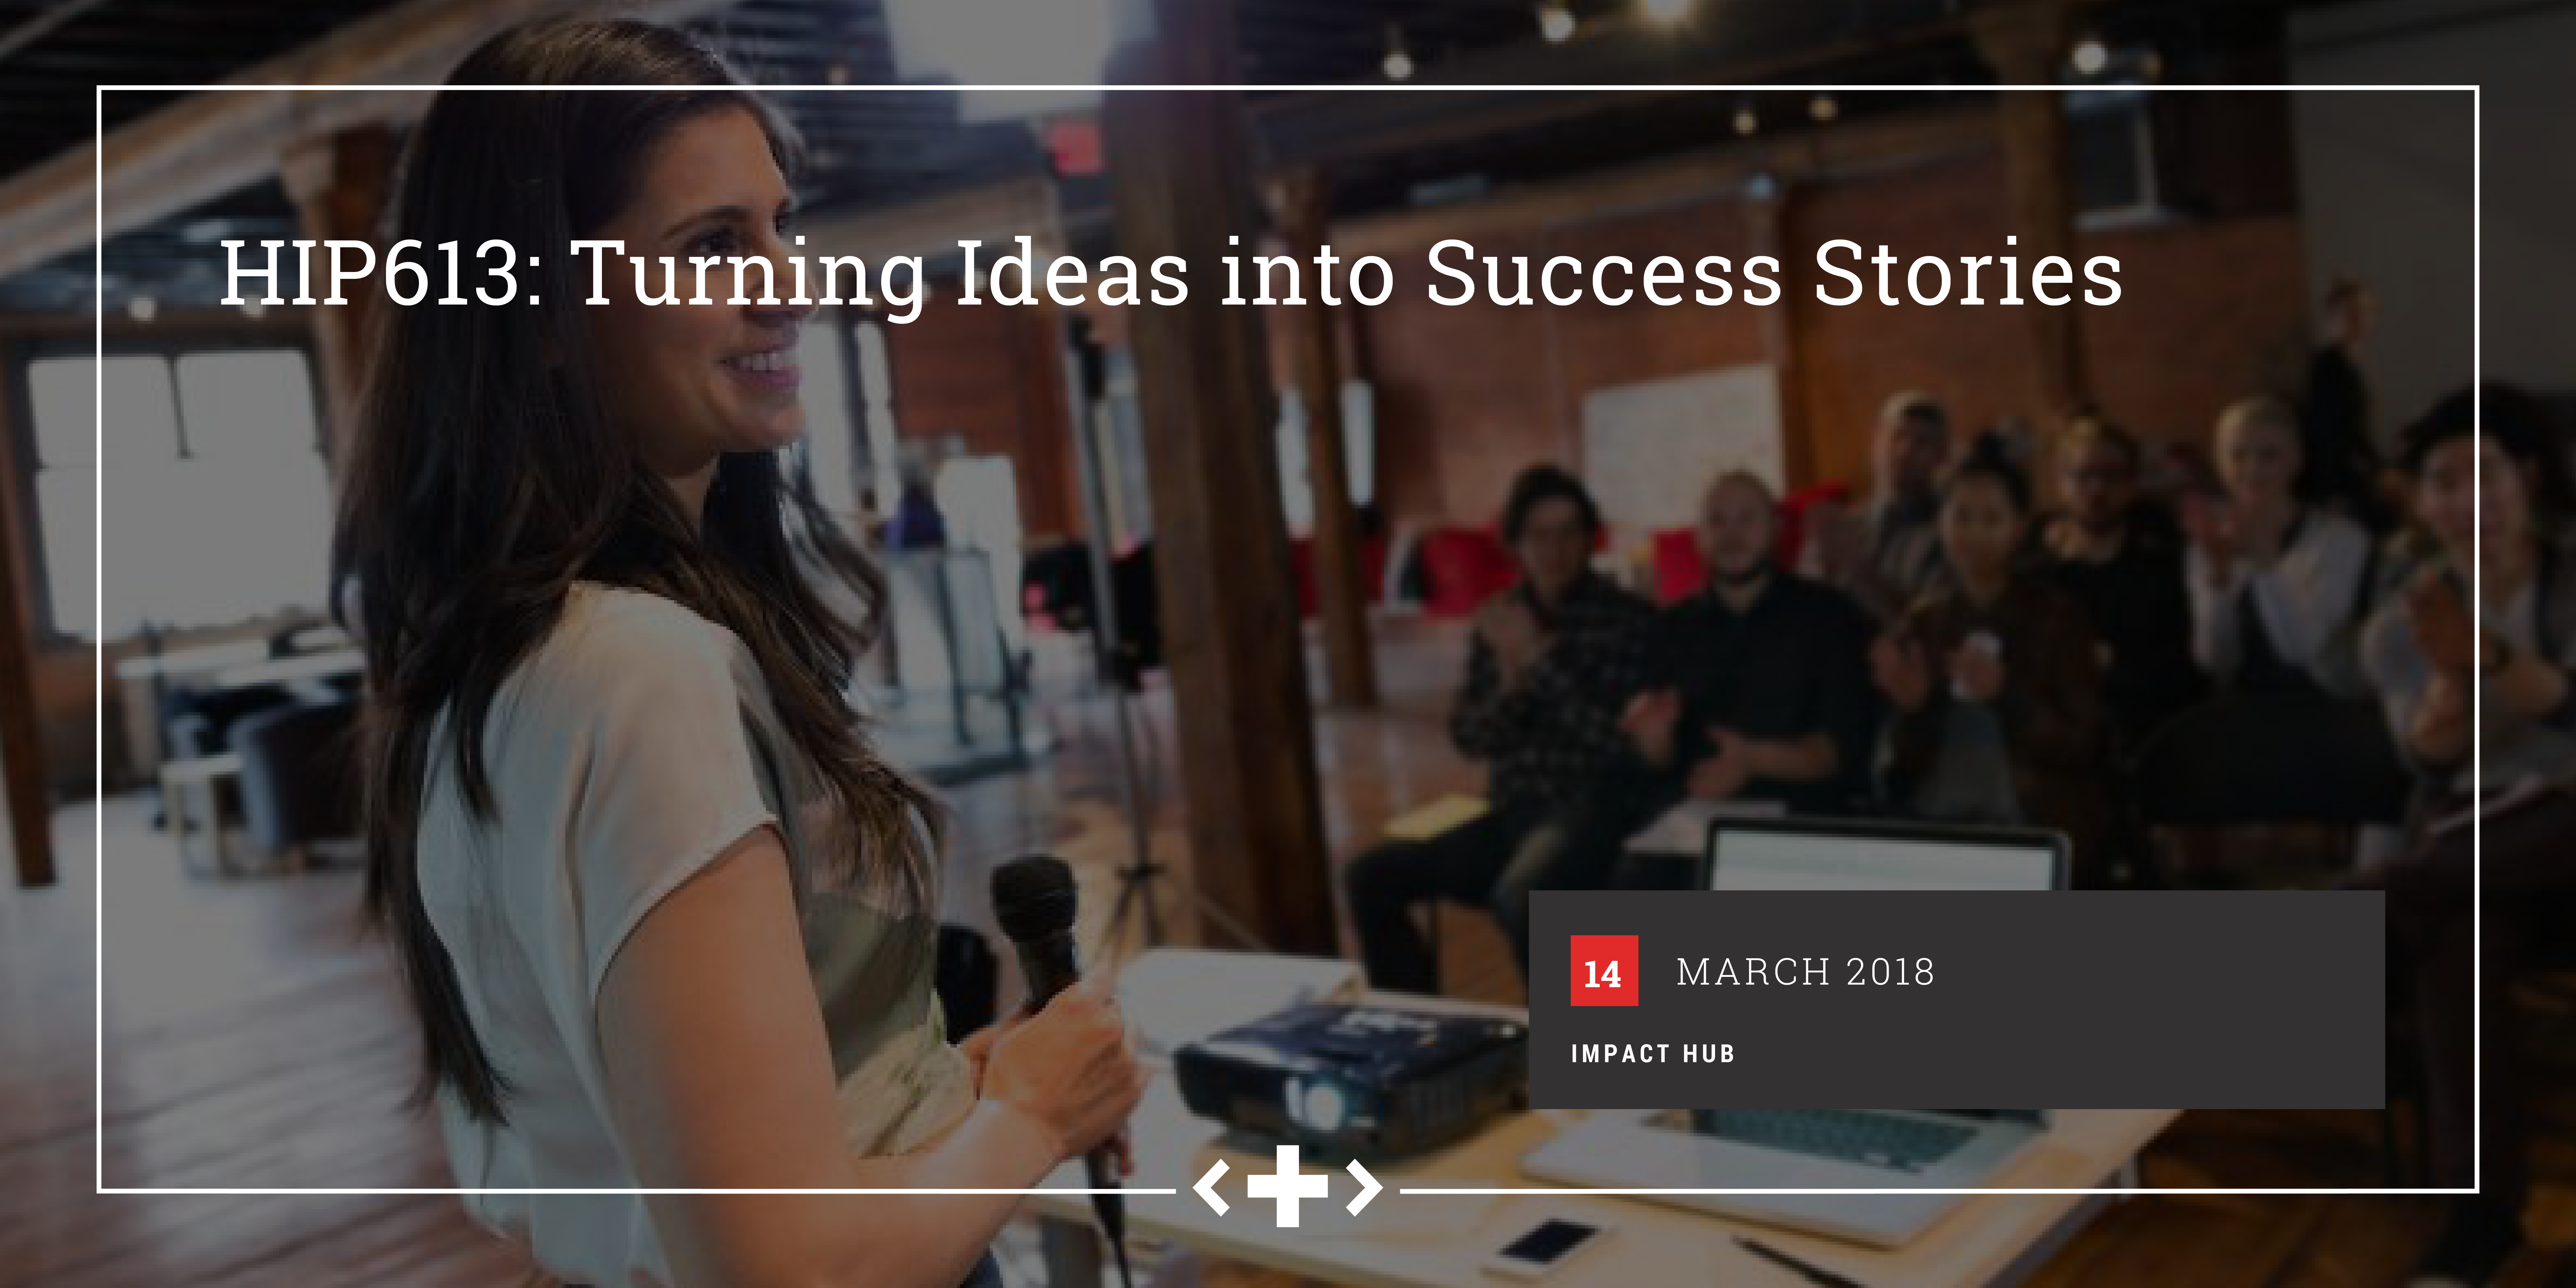 #HIP613: Turning Ideas into Success Stories